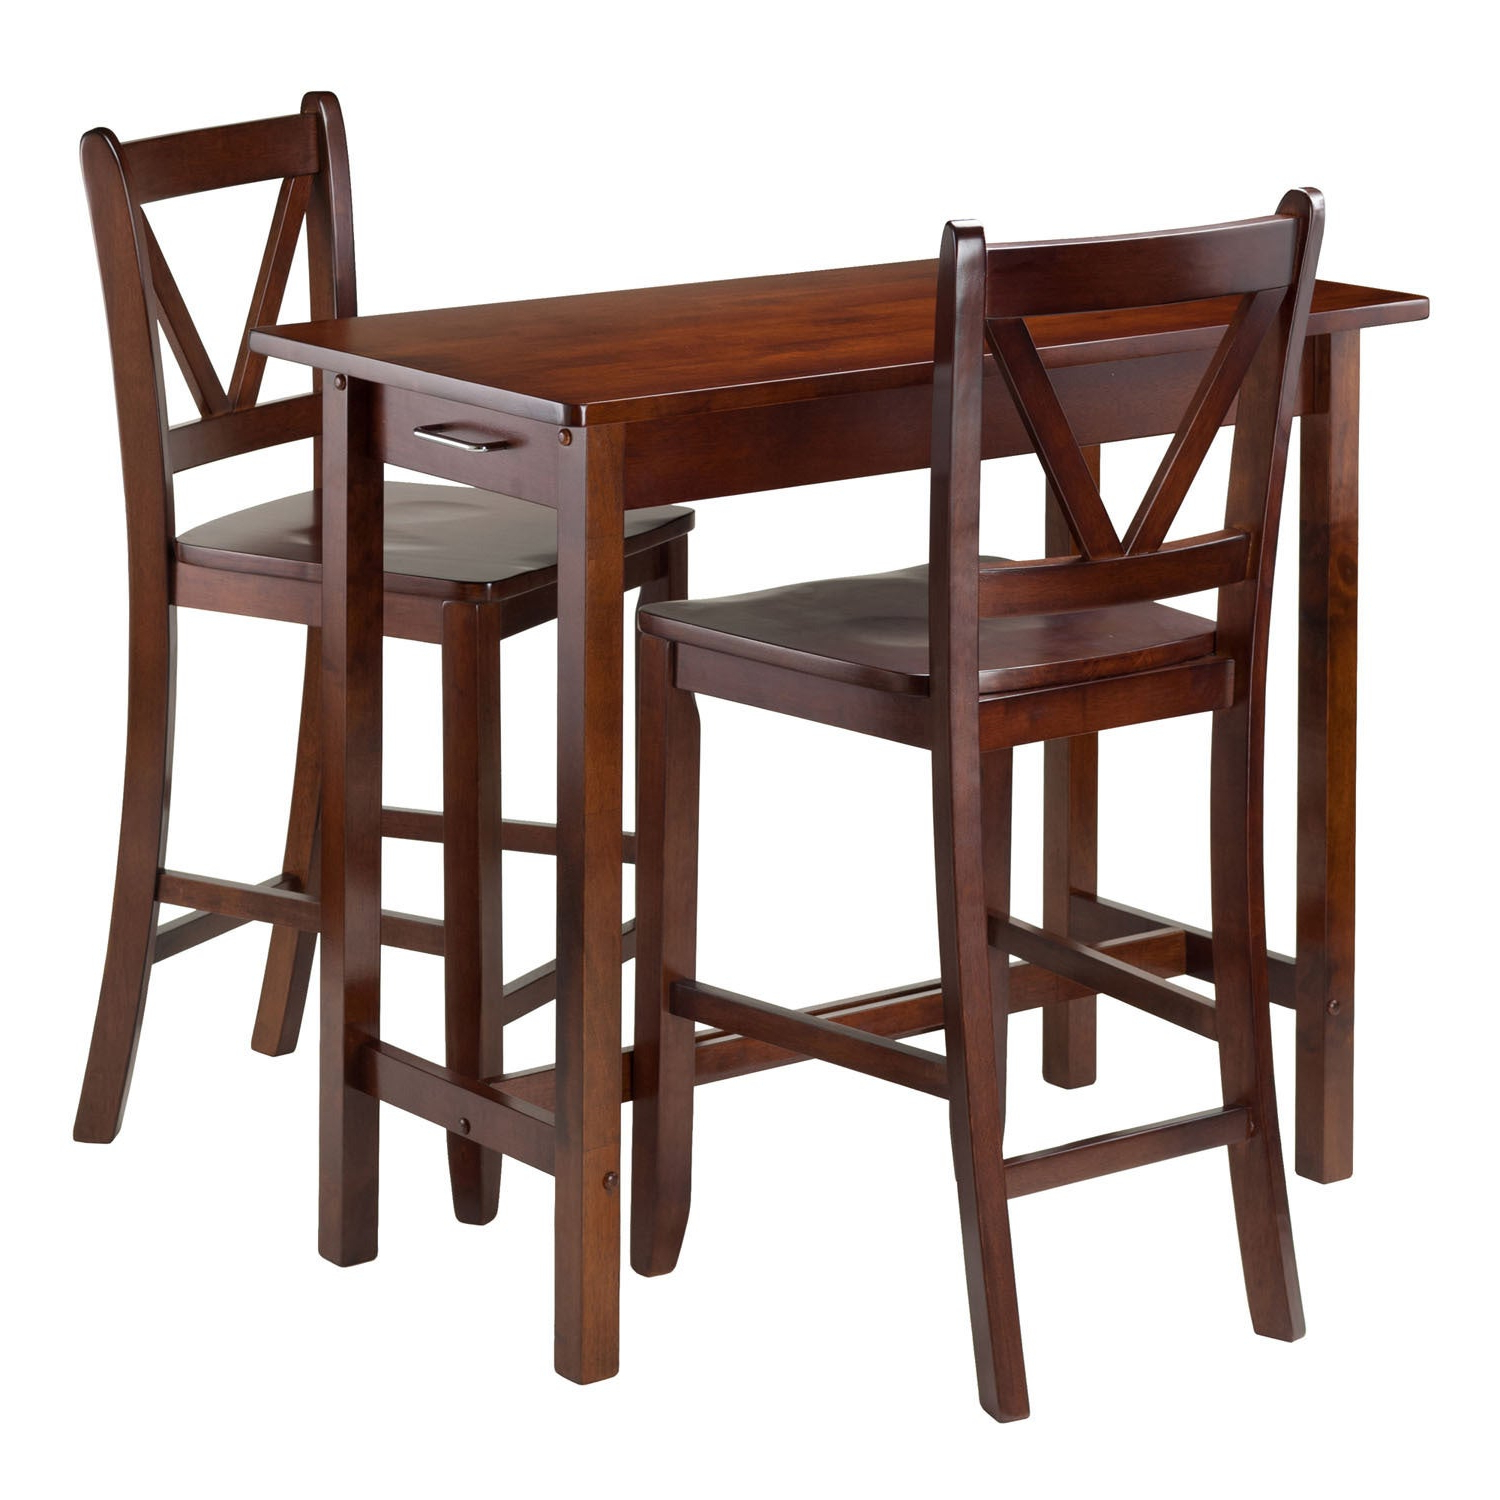 Shop Winsome 3 Piece Island Kitchen Table With 2 V Back Counter Within Famous Winsome 3 Piece Counter Height Dining Sets (View 10 of 25)